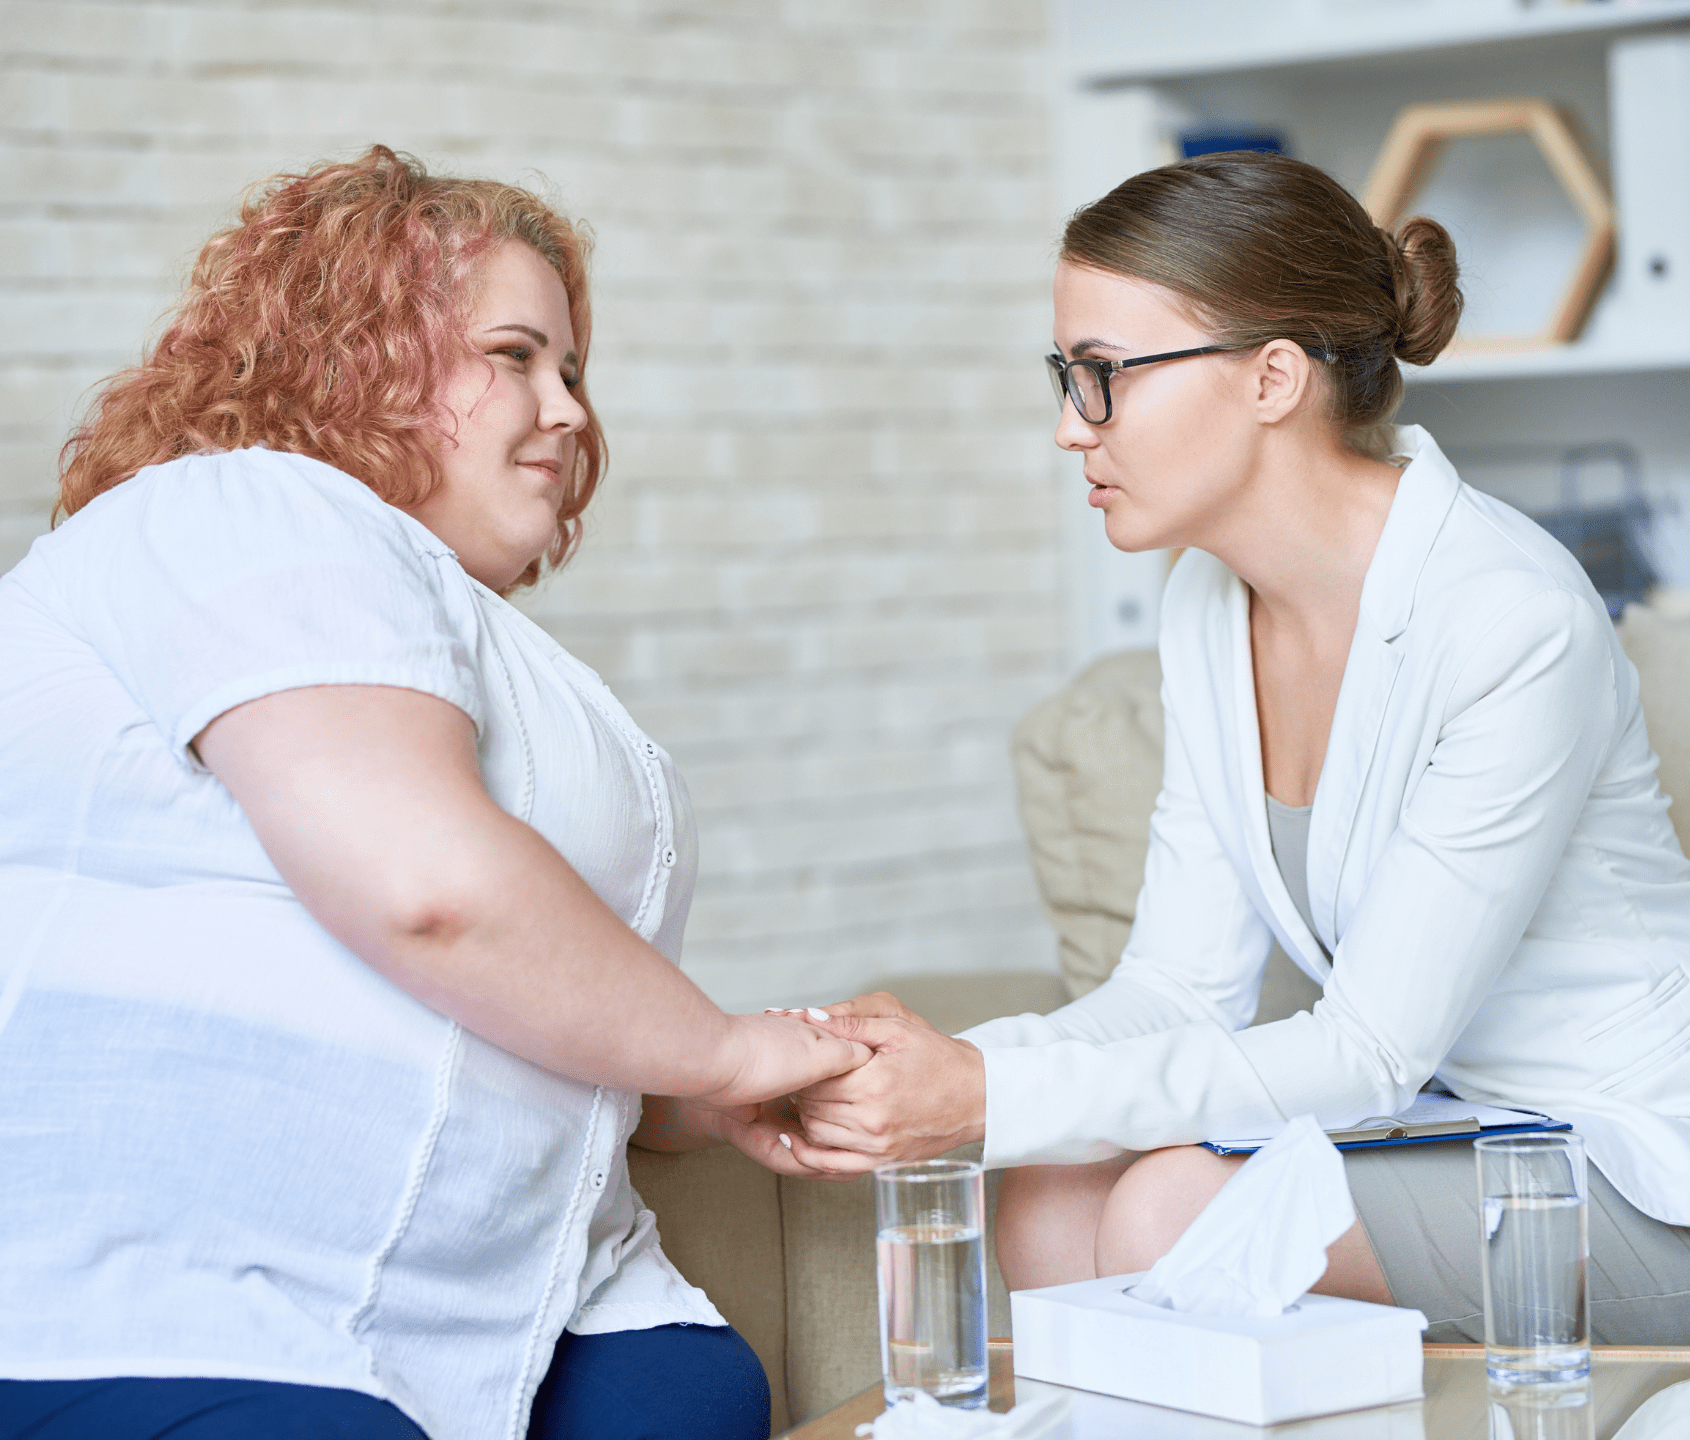 Treatment Approaches for Clients in Larger Bodies: Recognizing Our Own Biases